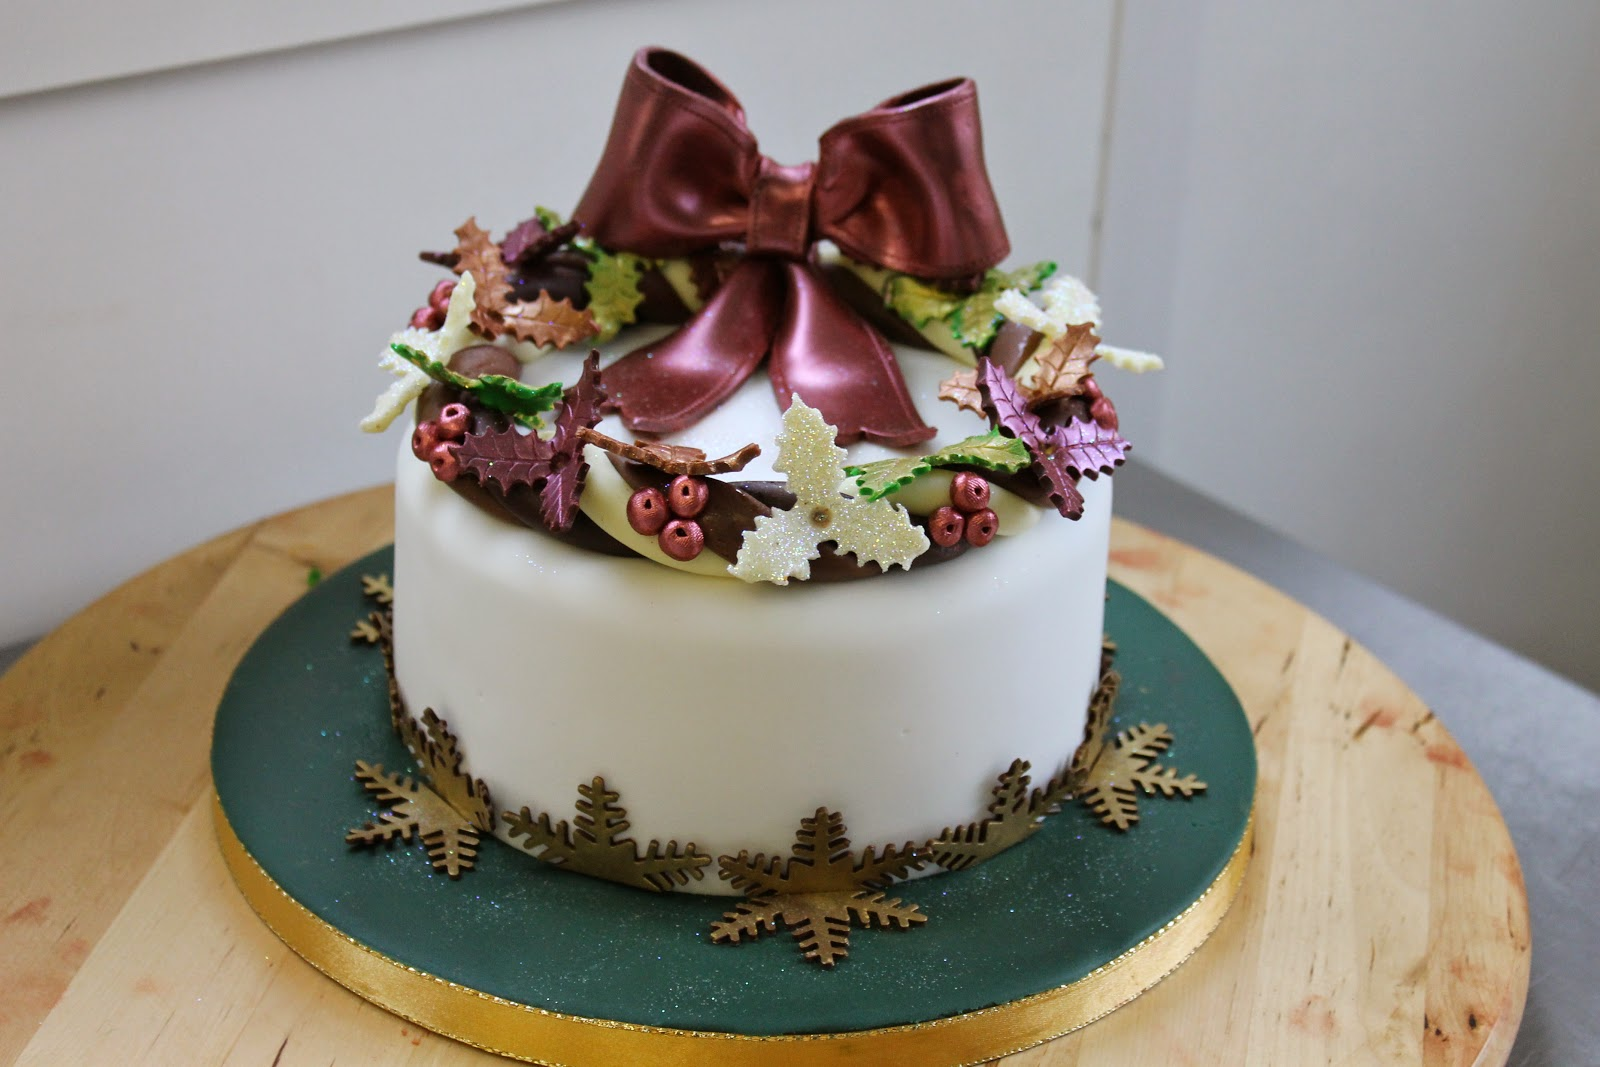 Cake Decorating Ideas Chocolate : Christmas cake decoration ideas beautiful creatife my blog